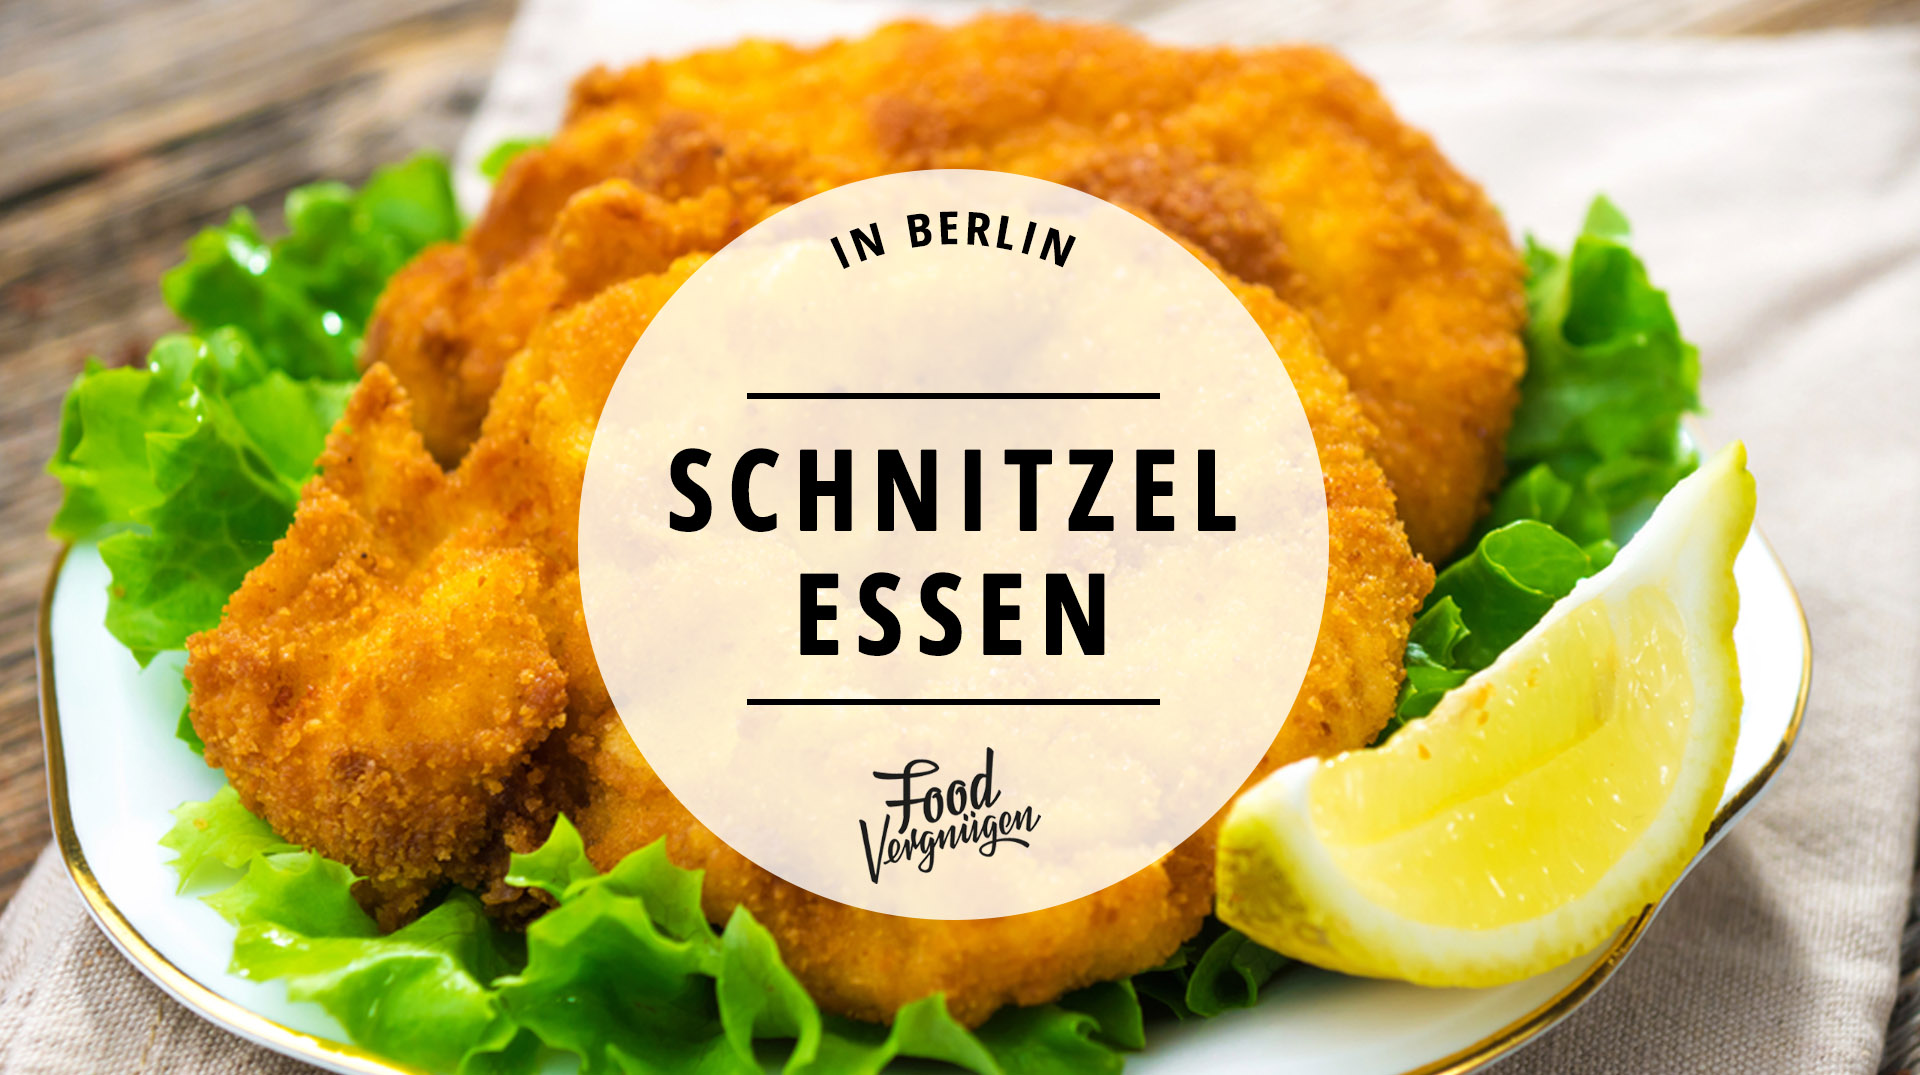 die 11 besten schnitzel restaurants in berlin mit vergn gen berlin. Black Bedroom Furniture Sets. Home Design Ideas